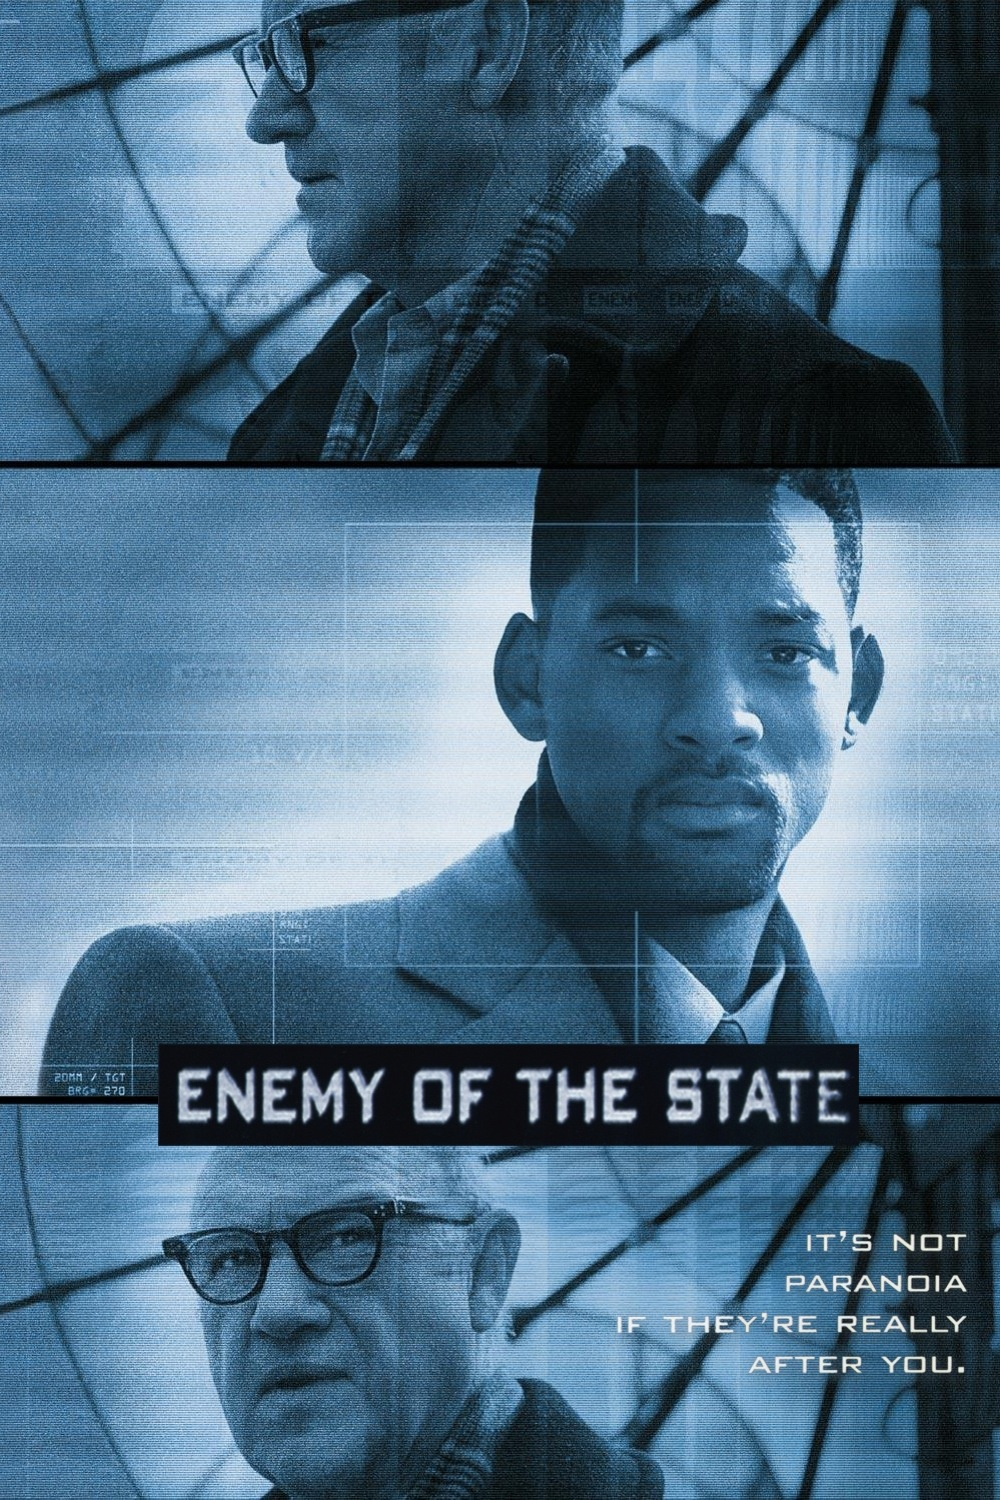 enemy of the state Enemy of the state - a lawyer becomes a target by a corrupt politician and his nsa goons when he accidentally receives key evidence to.